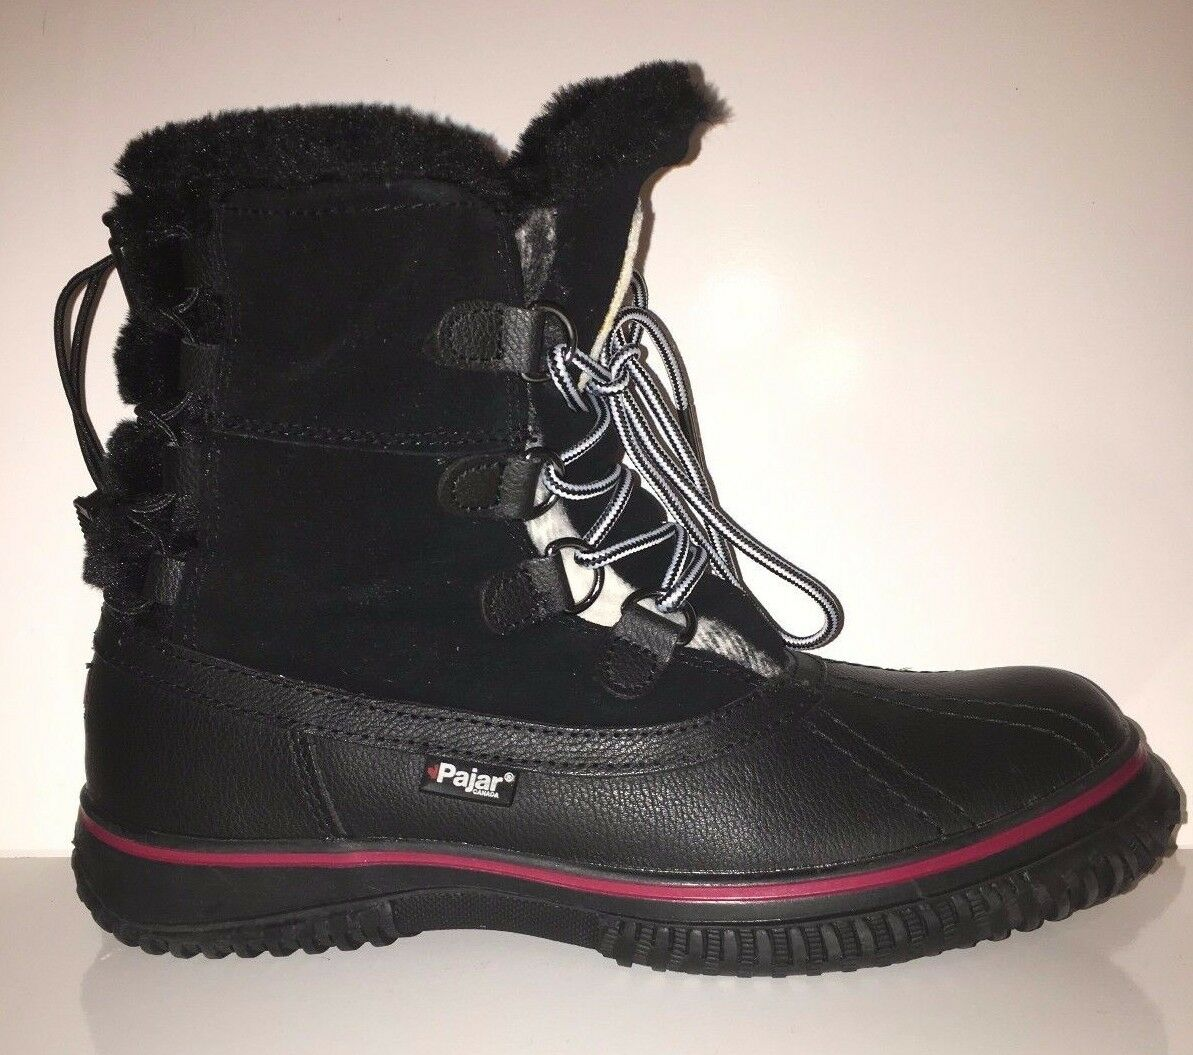 NEW Pajar Women's Iceburg Leather Snow Boots Waterproof shoes SZ 8 8.5